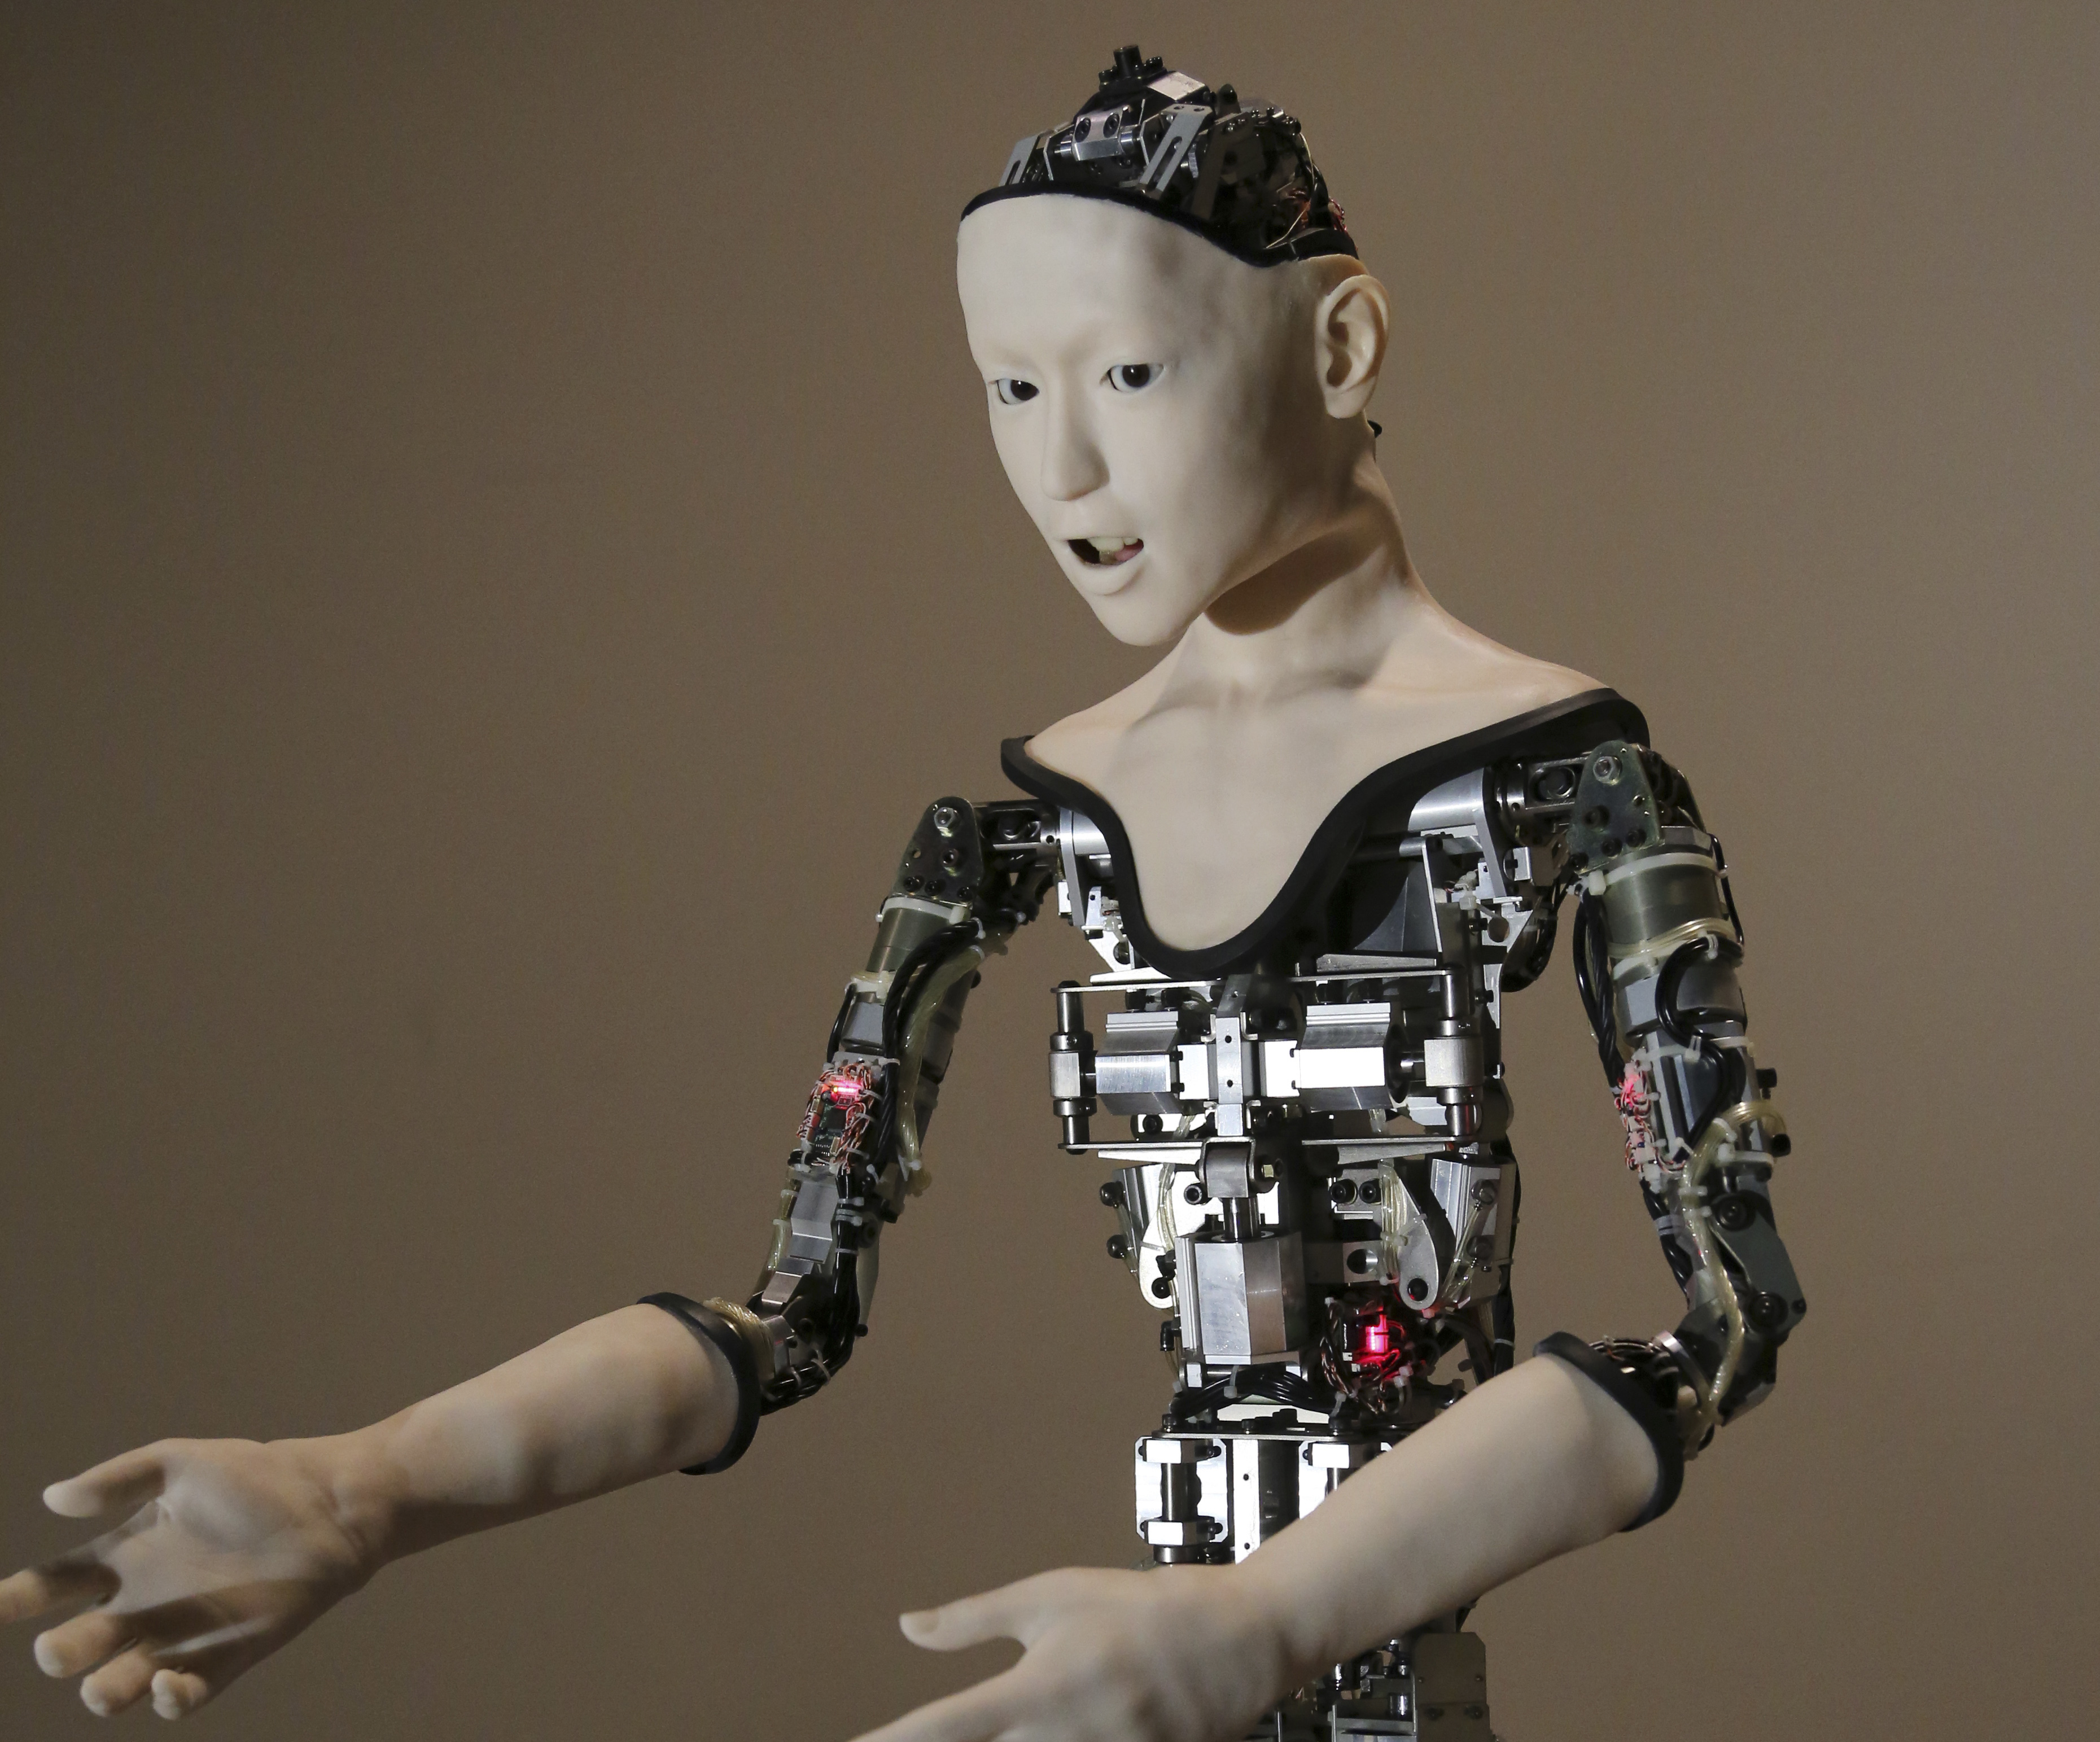 This creepy robot is powered by a neural network - CBS News